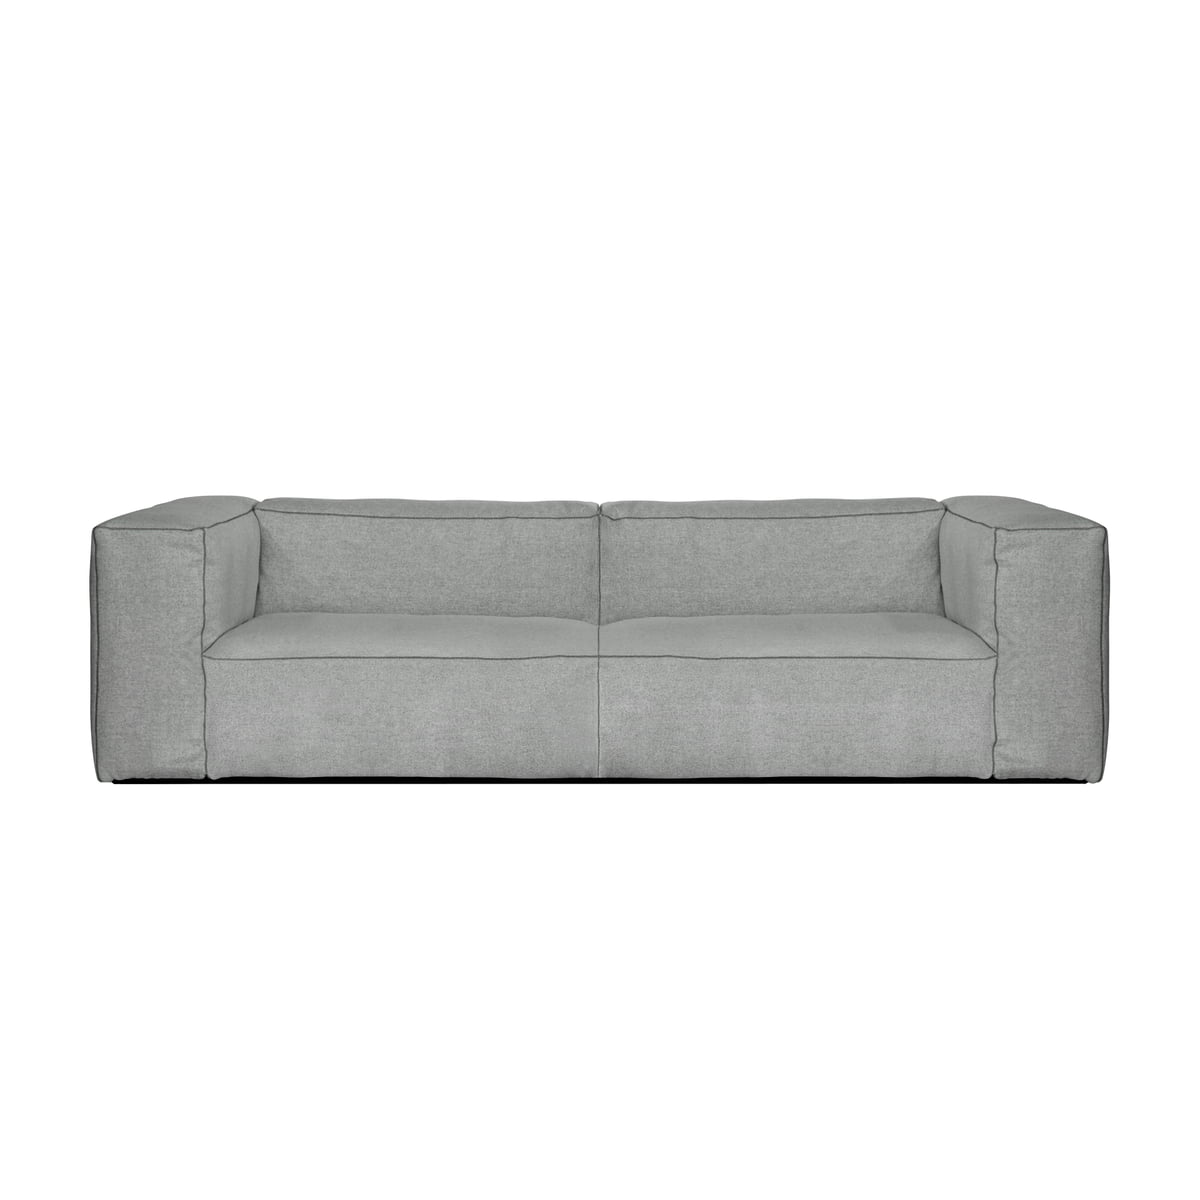 hay mags soft sofa 2 5 seater connox. Black Bedroom Furniture Sets. Home Design Ideas